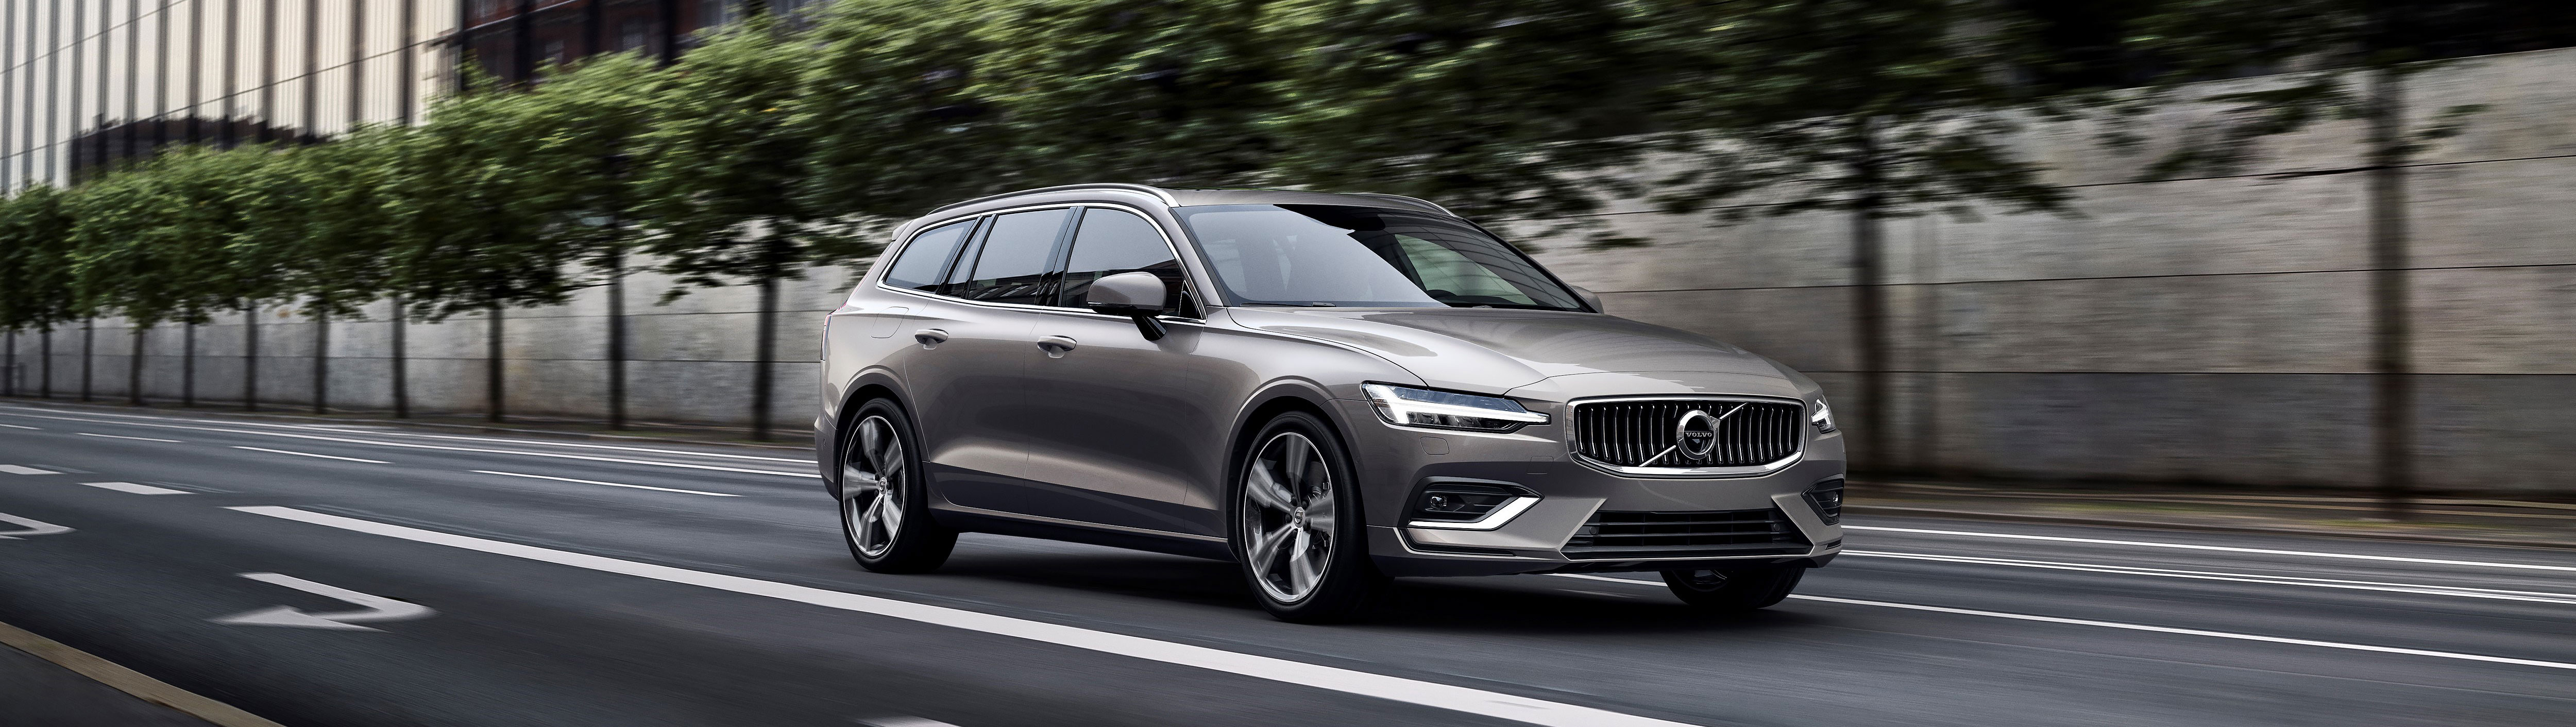 The Volvo V60 while driving on the road.